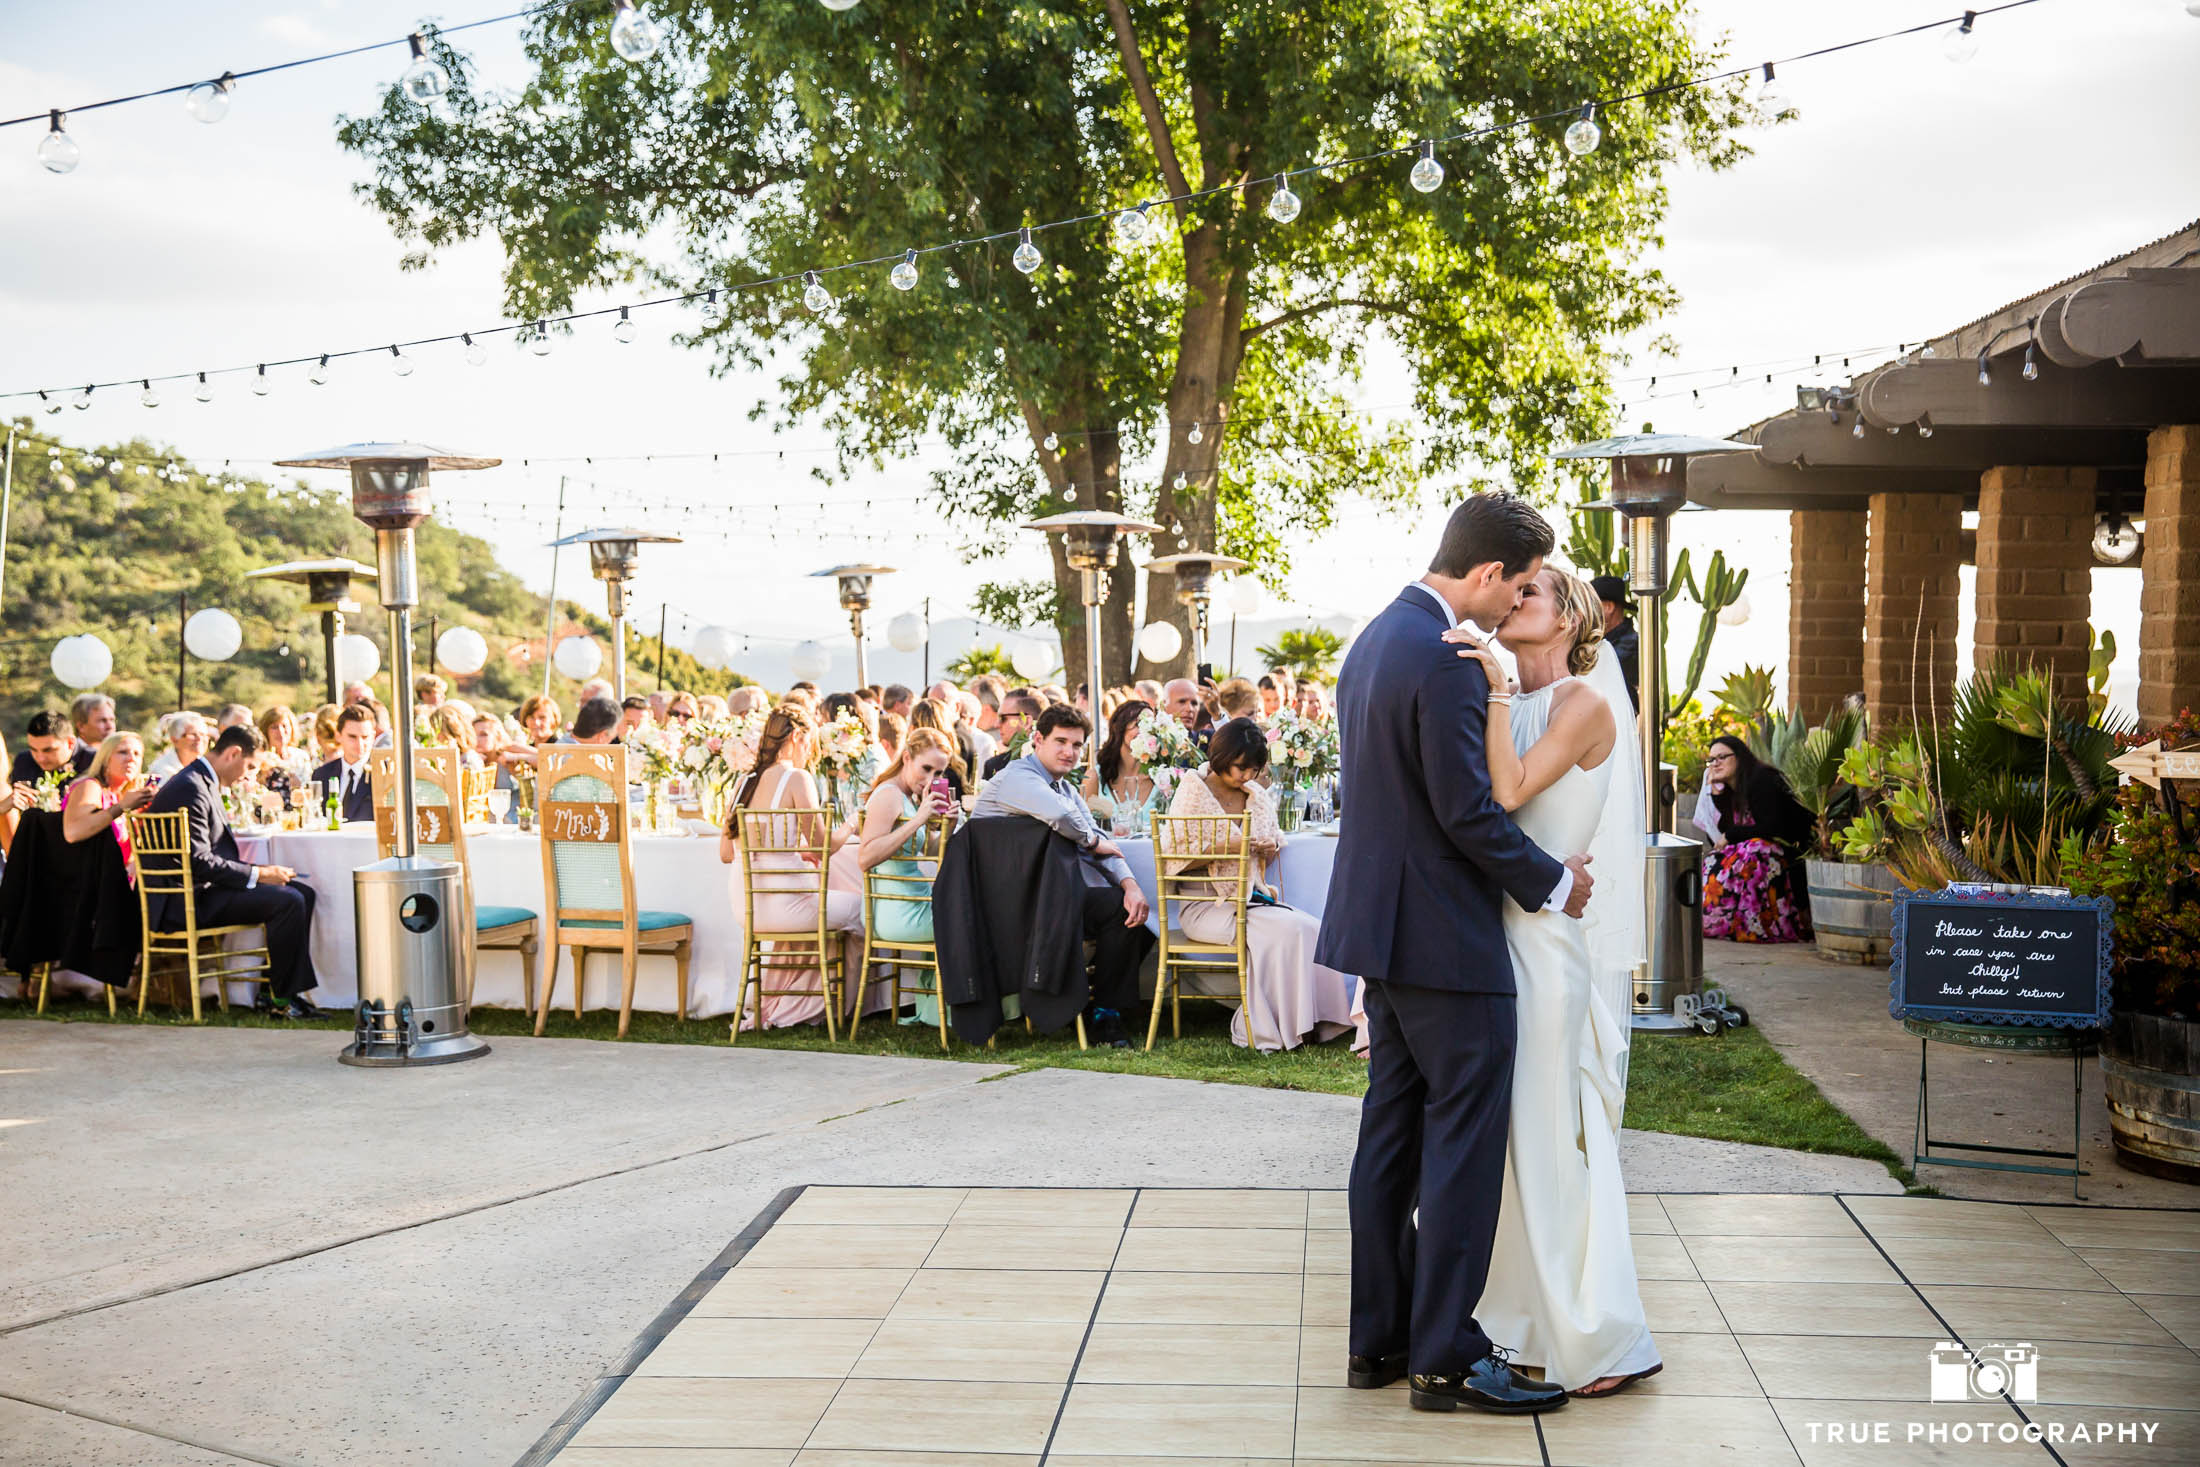 Bride and Groom share romantic First Dance during rustic outdoor wedding reception